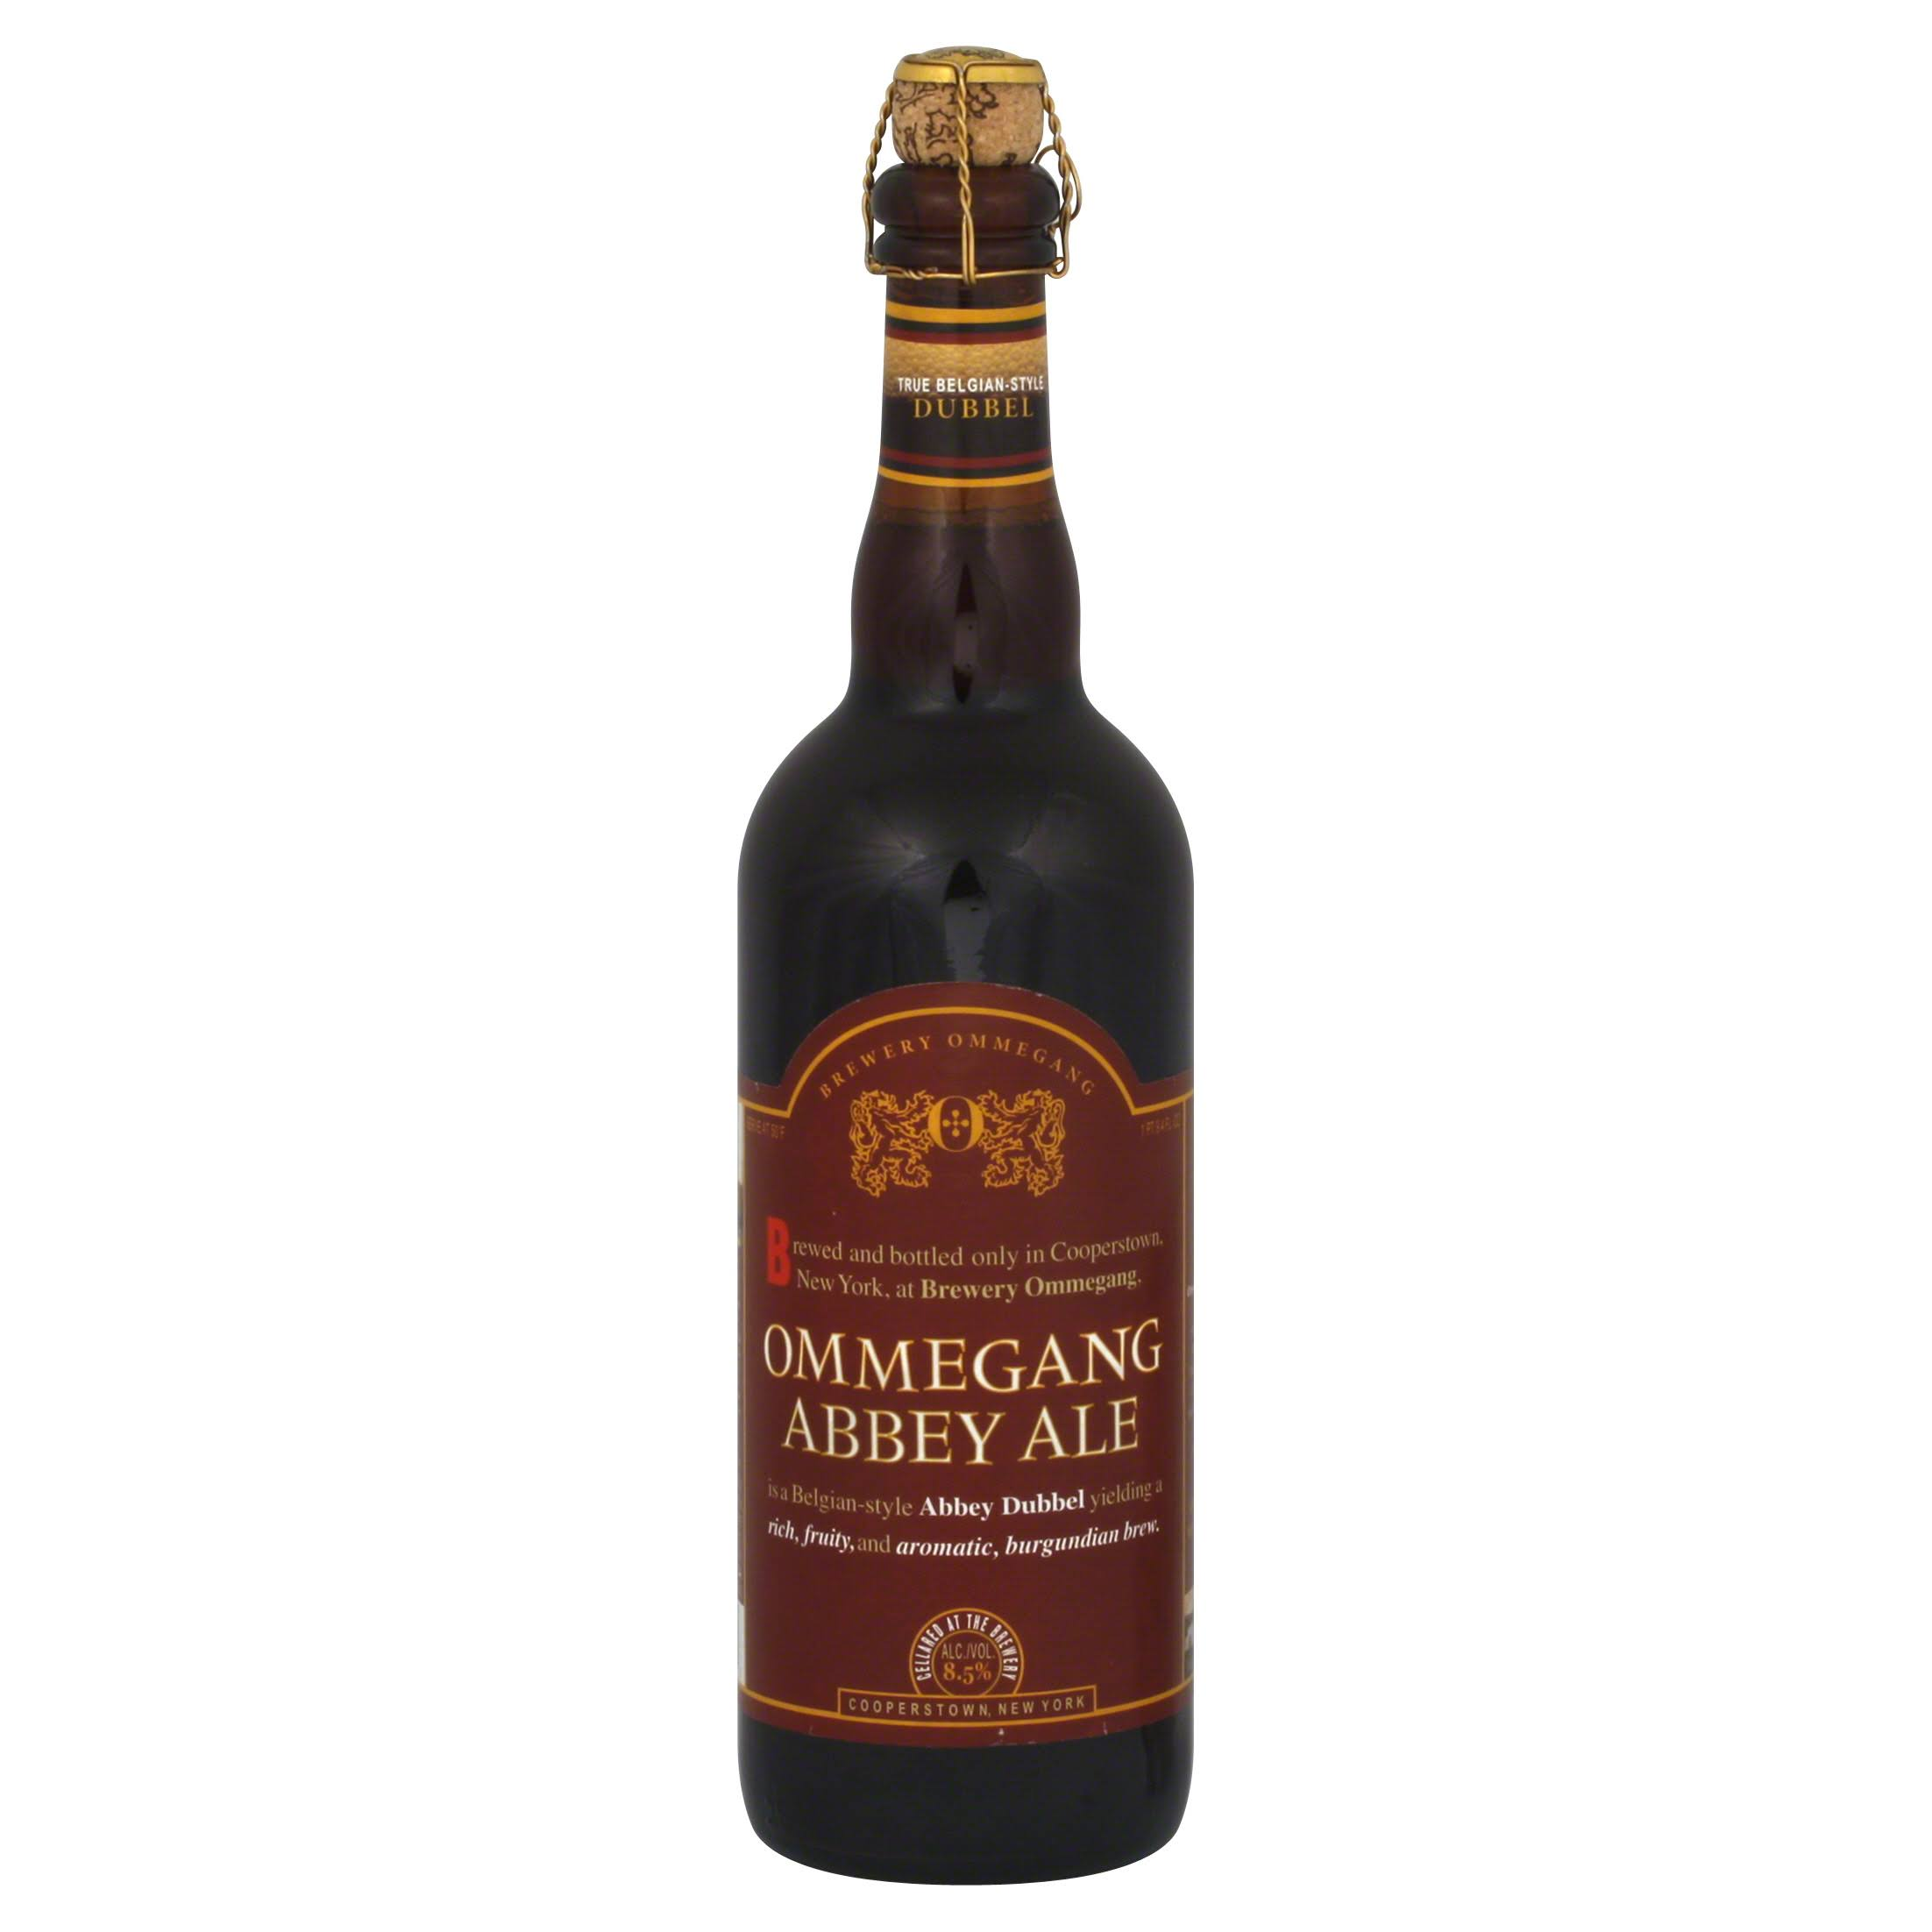 Brewery Ommegang Ale,Ommegang Abbey - 8.4 fl oz